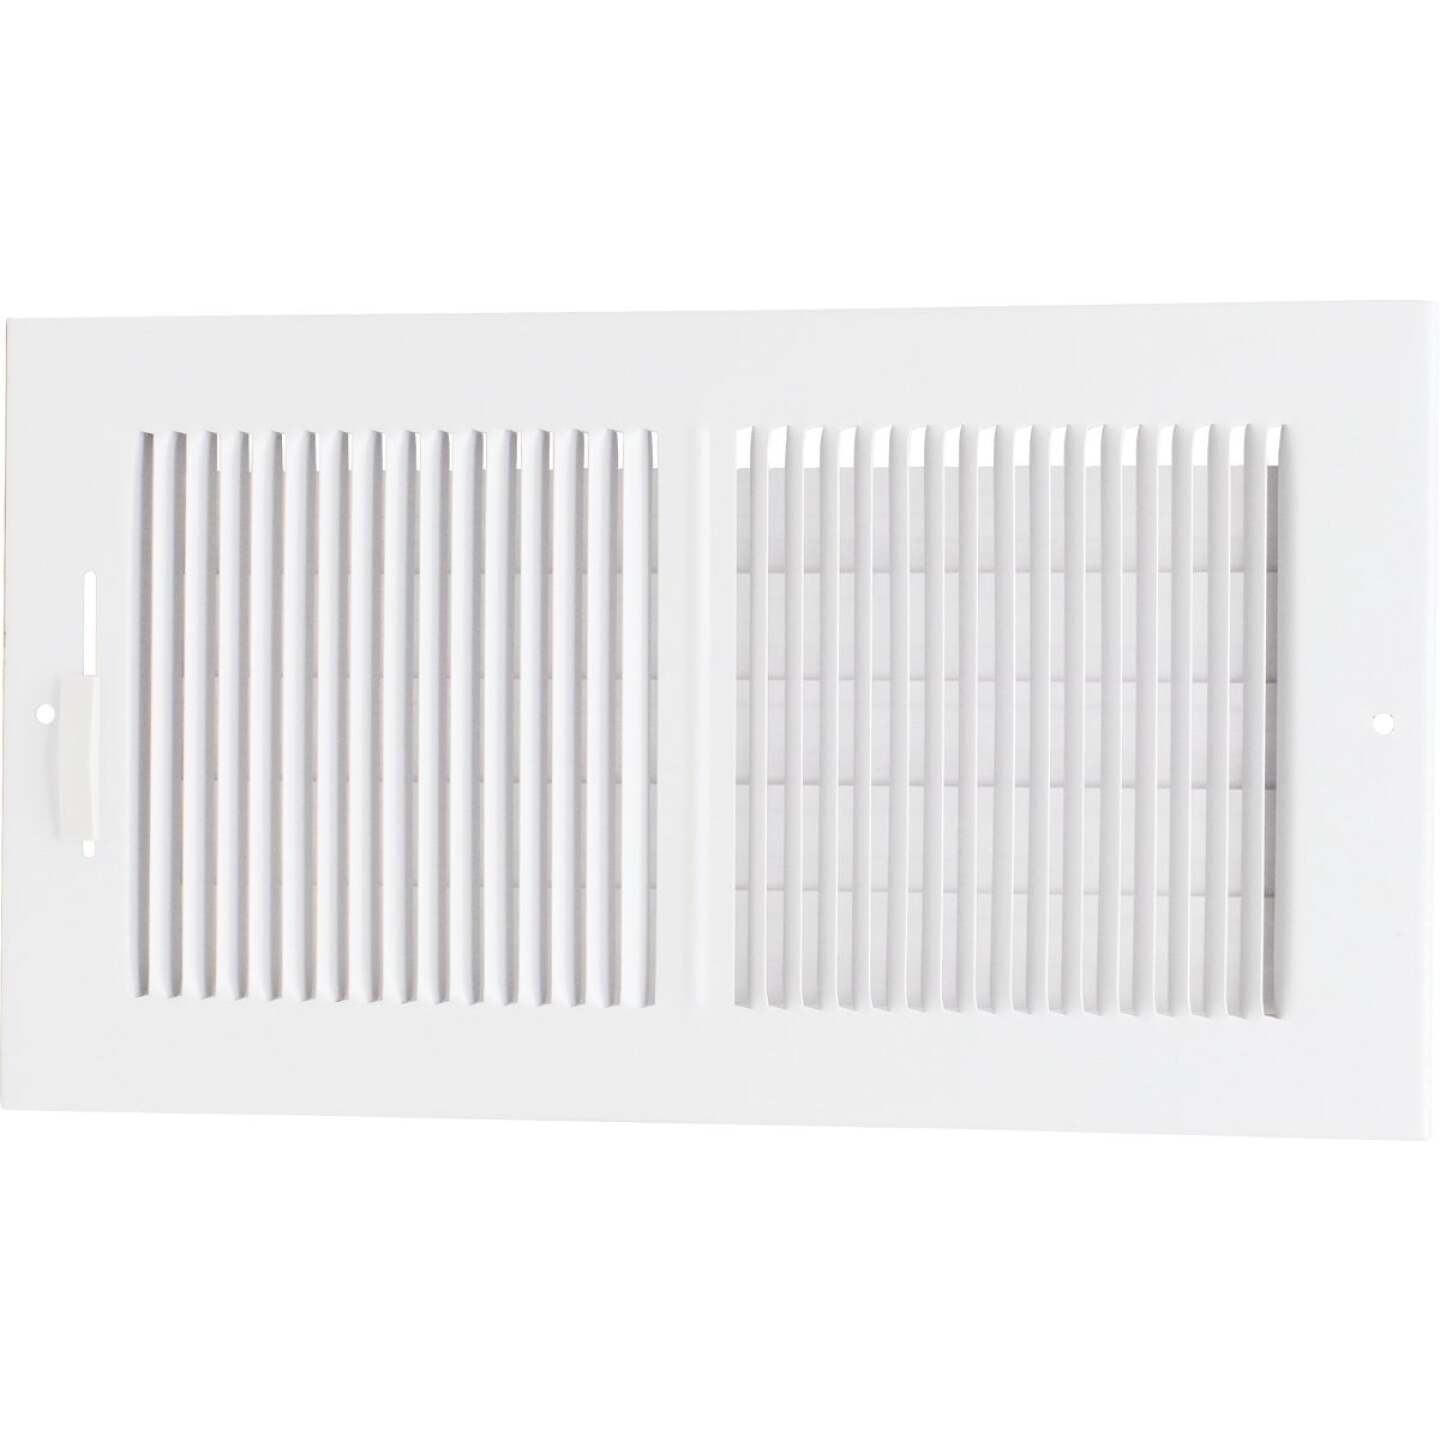 Accord 12 In. x 6 In. White Wall Register Image 1